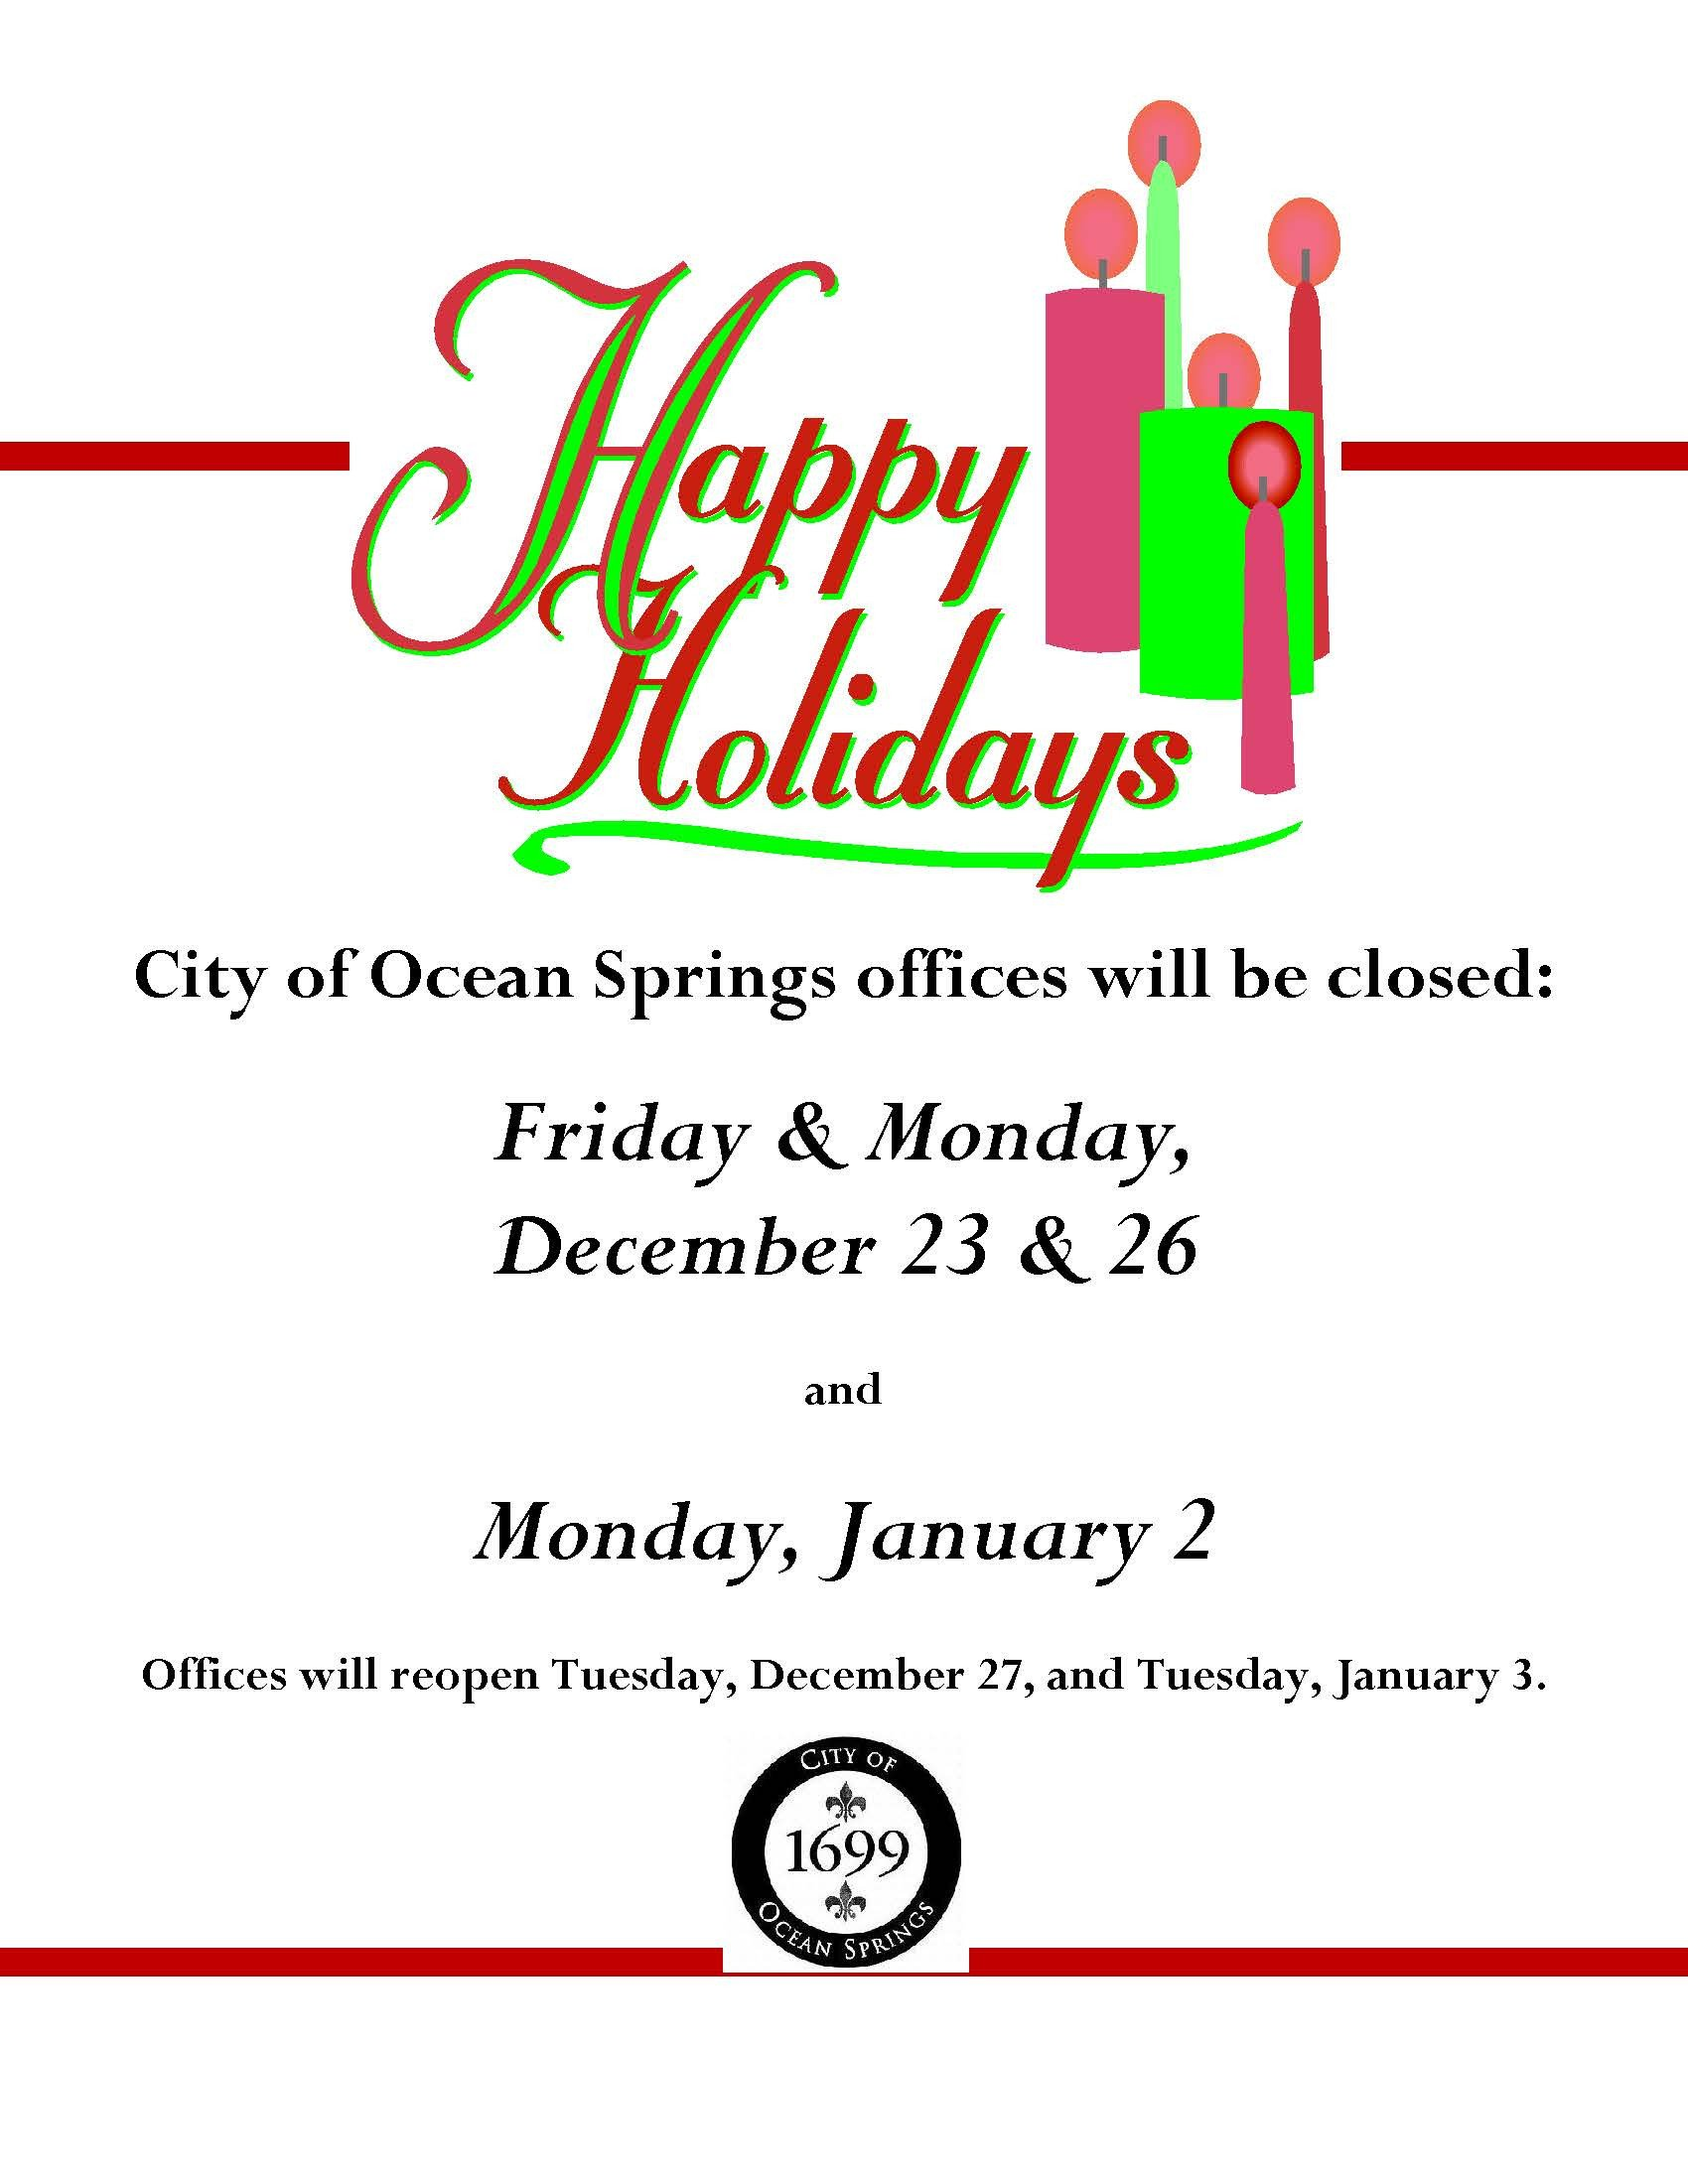 Holiday Closing Notice Template Notice Fice Closure Dates for Holidays